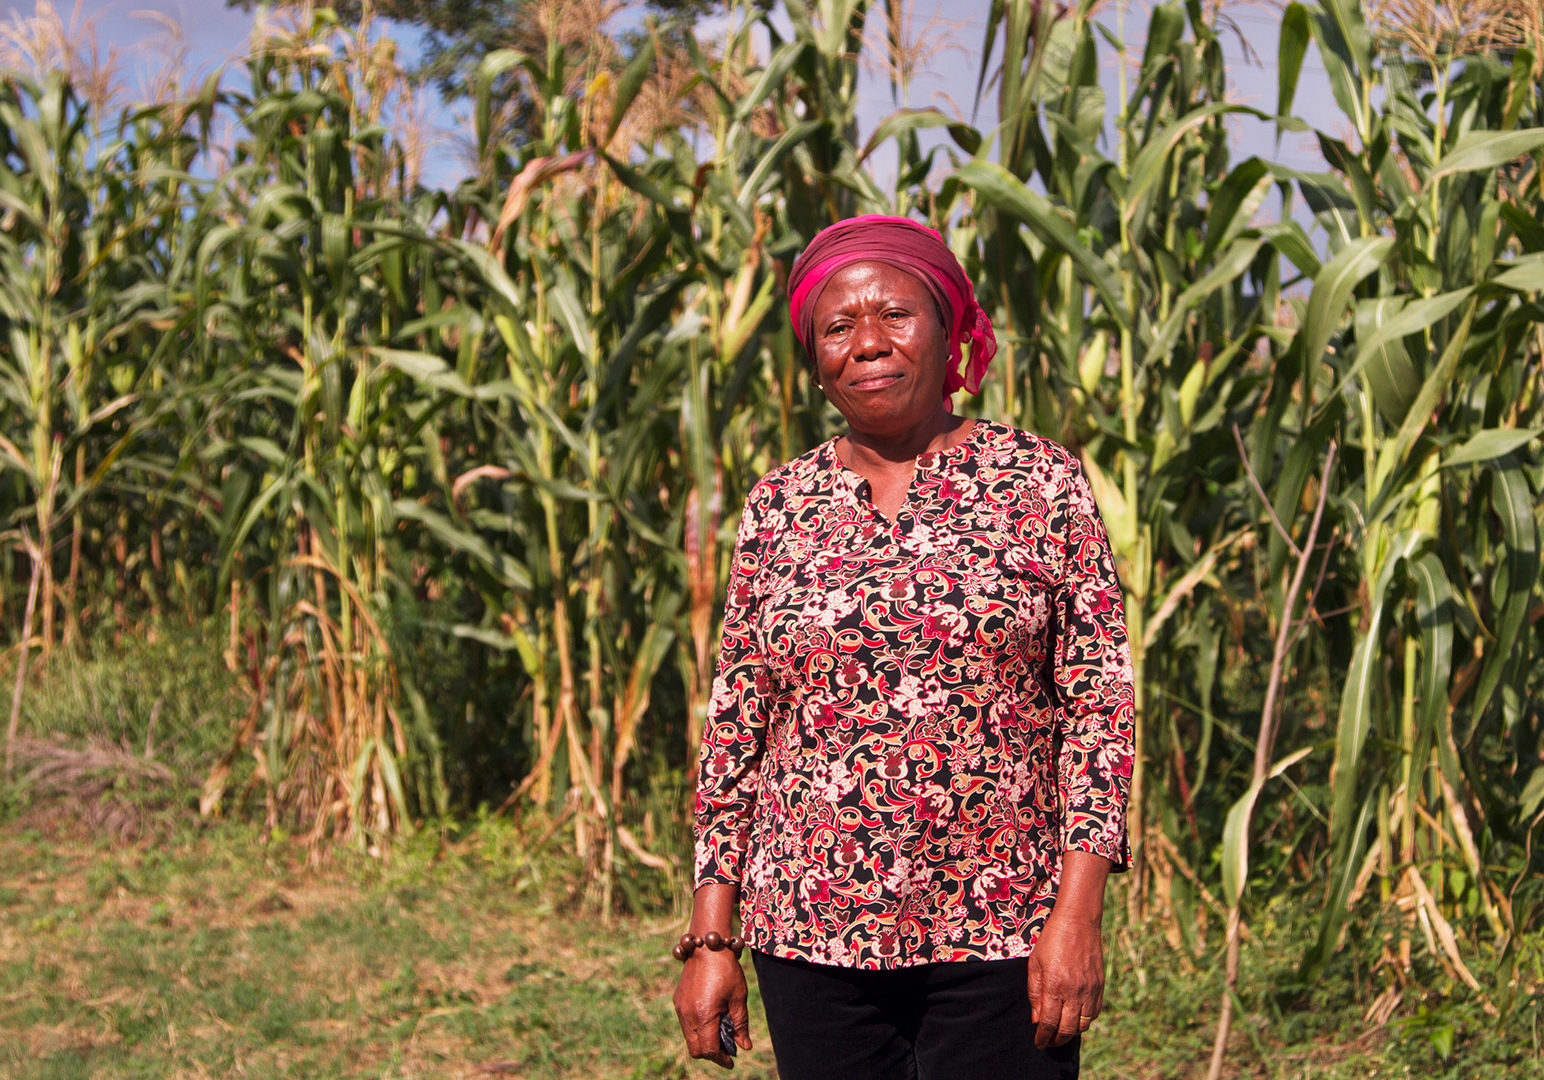 An female African farmer standing in front of a maize field